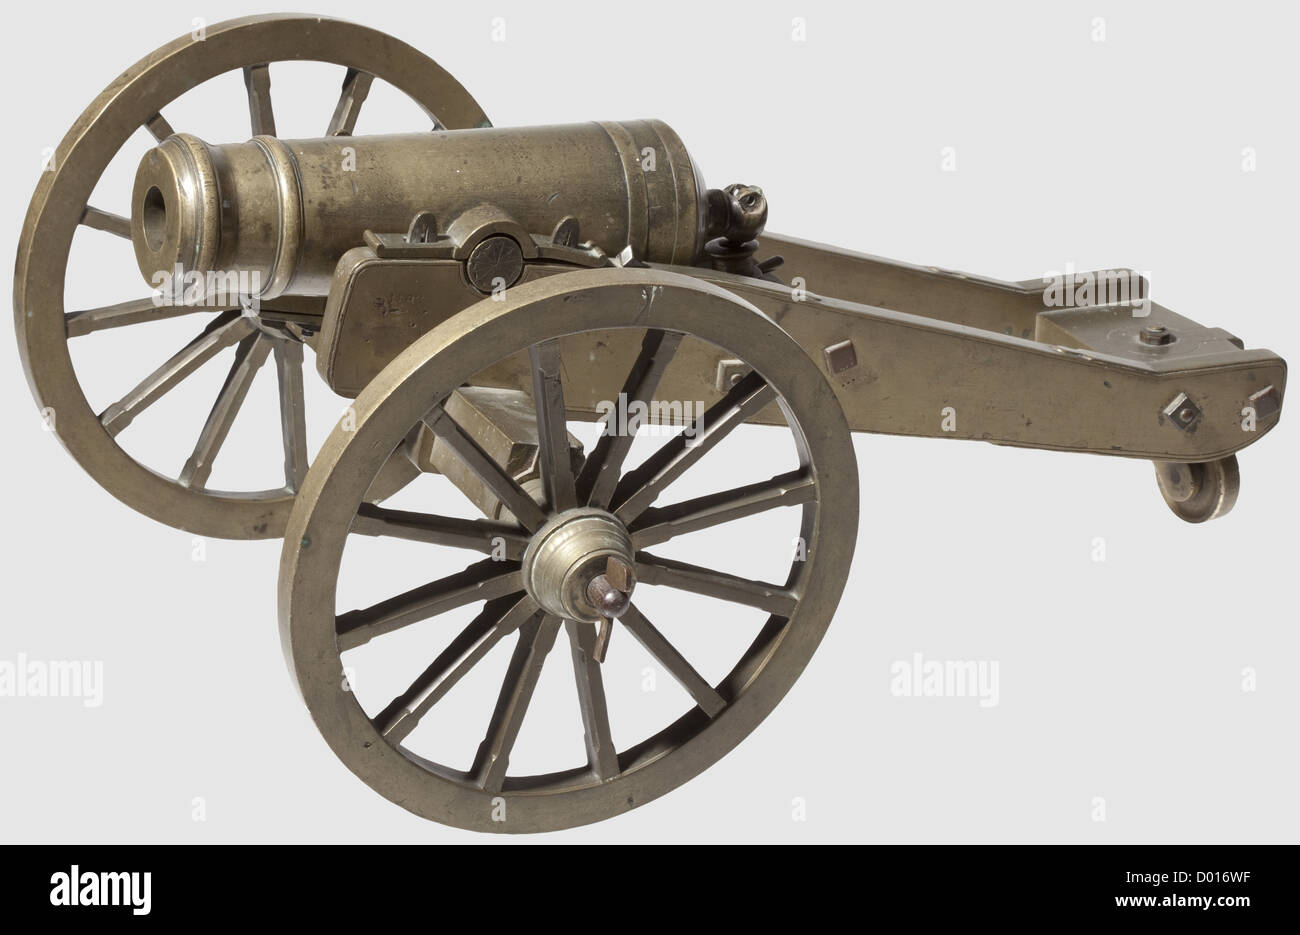 A model of a field cannon,circa 1800 style. Strong,brass barrel segmented by girdles,with smooth bore in calibre 25 mm with trunnions on the sides,upper touch hole and cannon muzzle. Wheels and carriage made of cast brass with iron wheel axle. One wheel cotter pin and four trunnion cotter pins missing. Barrel length 27 cm,total length 53 cm,historic,historical,19th century,cannon,cannons,artillery,firearm,fire arm,firearms,fire arms,weapons,arms,weapon,arm,fighting device,military,militaria,object,objects,stills,clipping,clippings,cu,Additional-Rights-Clearences-Not Available Stock Photo